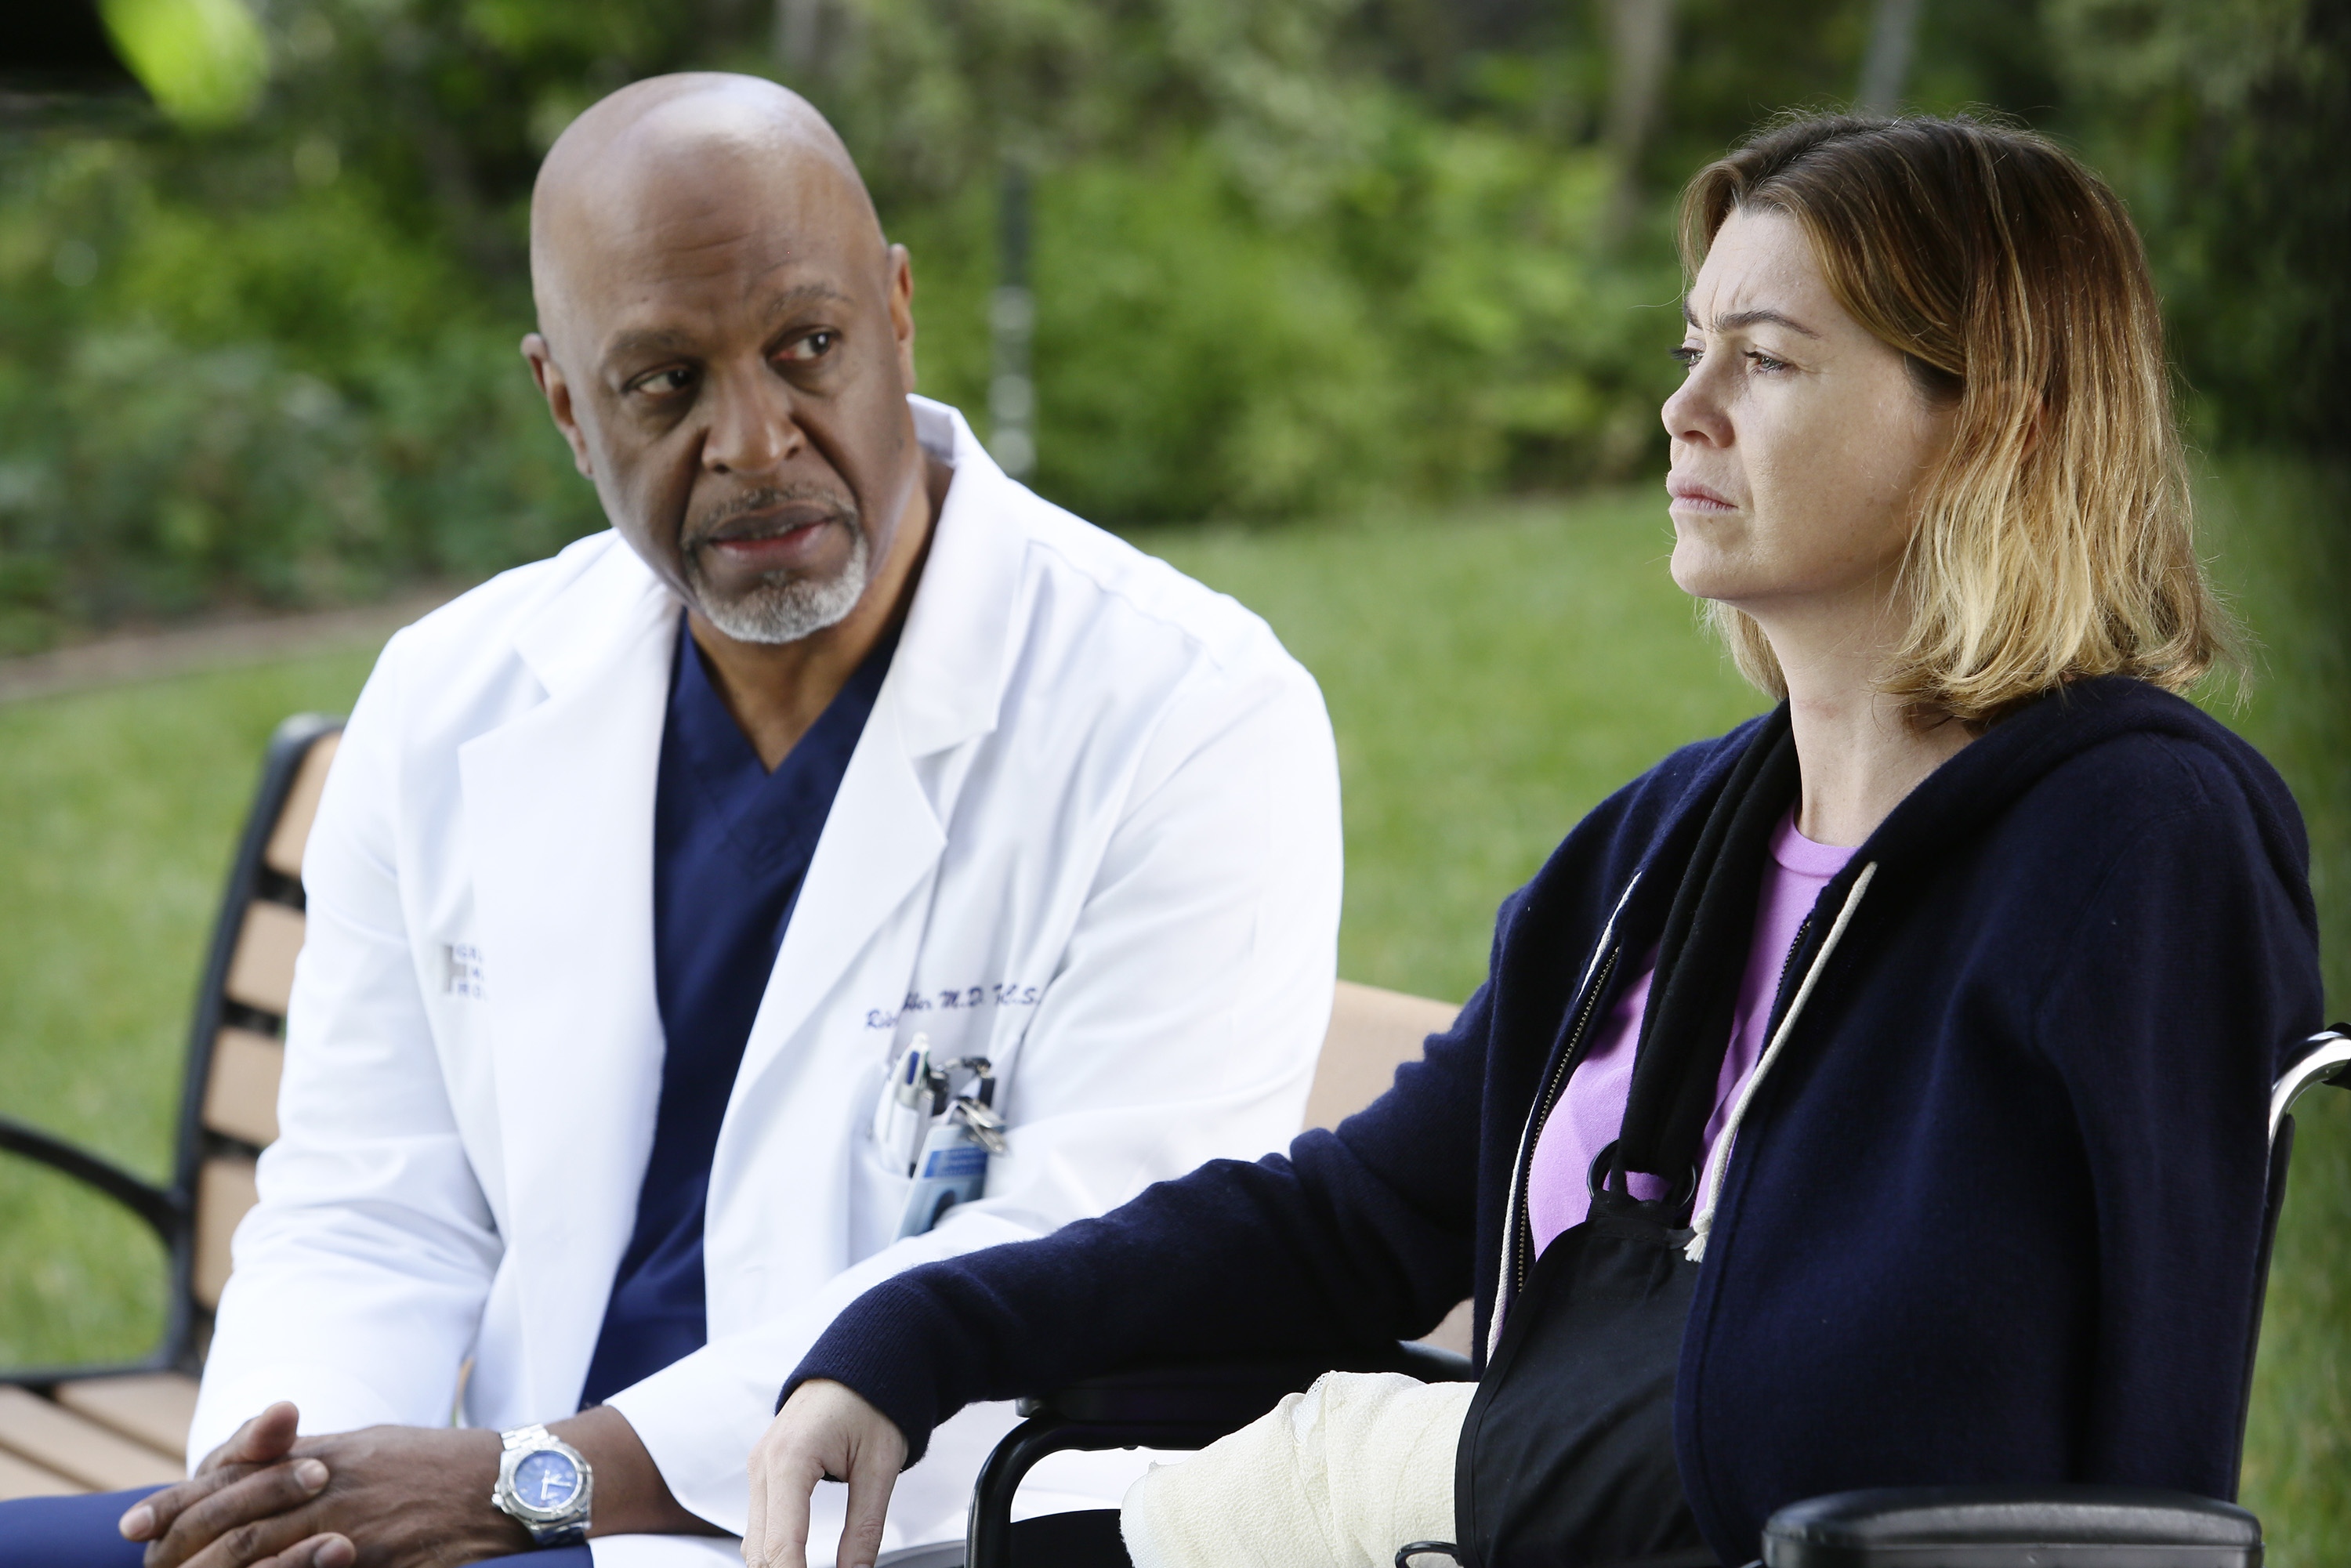 """GREY'S ANATOMY - """"The Sound of Silence"""" - Meredith is brutally attacked by a patient, and Penny is the one who discovers her. The doctors of Grey Sloan Memorial rush to stabilize Meredith and remain by her side in the harrowing aftermath, on the midseason return of """"Grey's Anatomy,"""" THURSDAY, FEBRUARY 11 (8:00--9:00 p.m. EST) on the ABC Television Network. (ABC/Nicole Wilder) JAMES PICKENS JR., ELLEN POMPEO"""